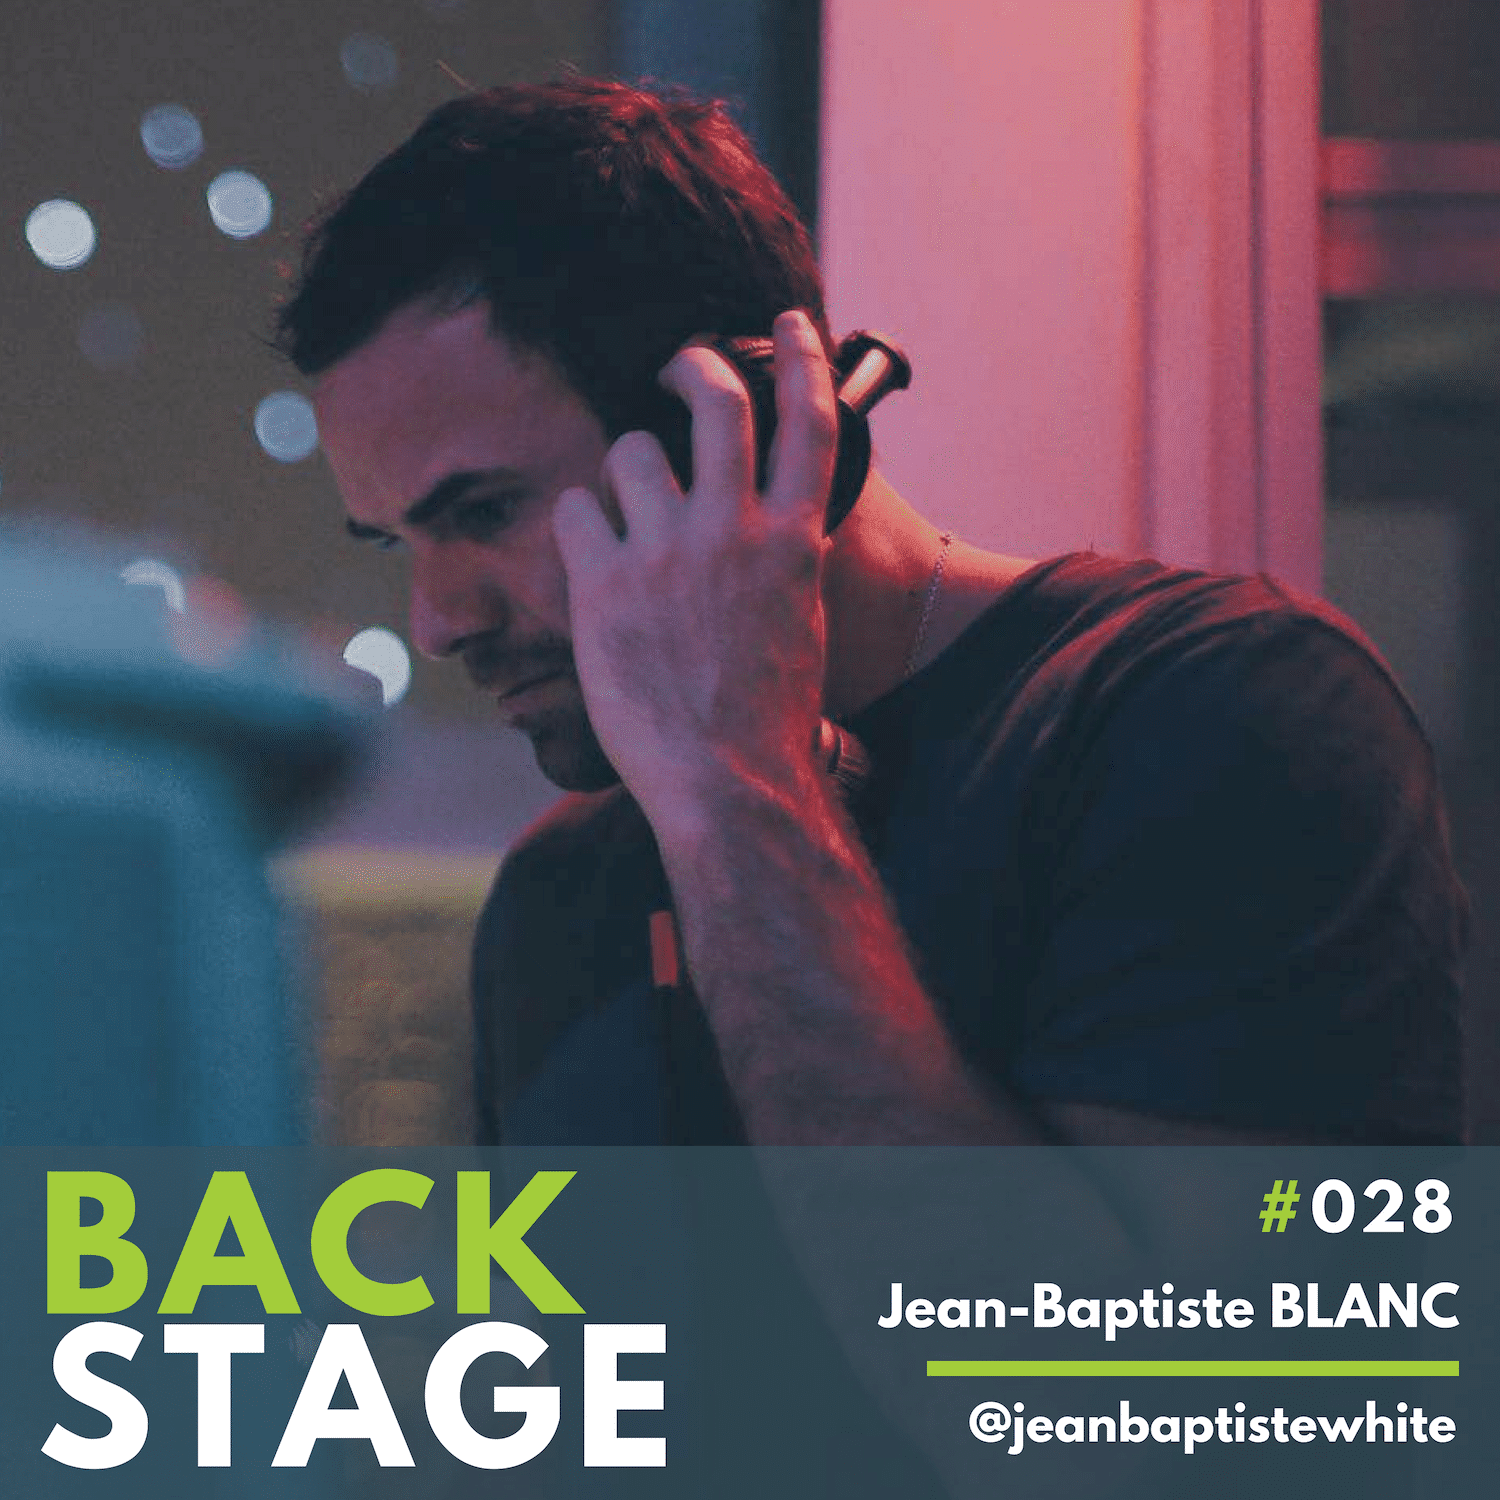 BACKSTAGE #028 - Jean Baptiste Blanc copy